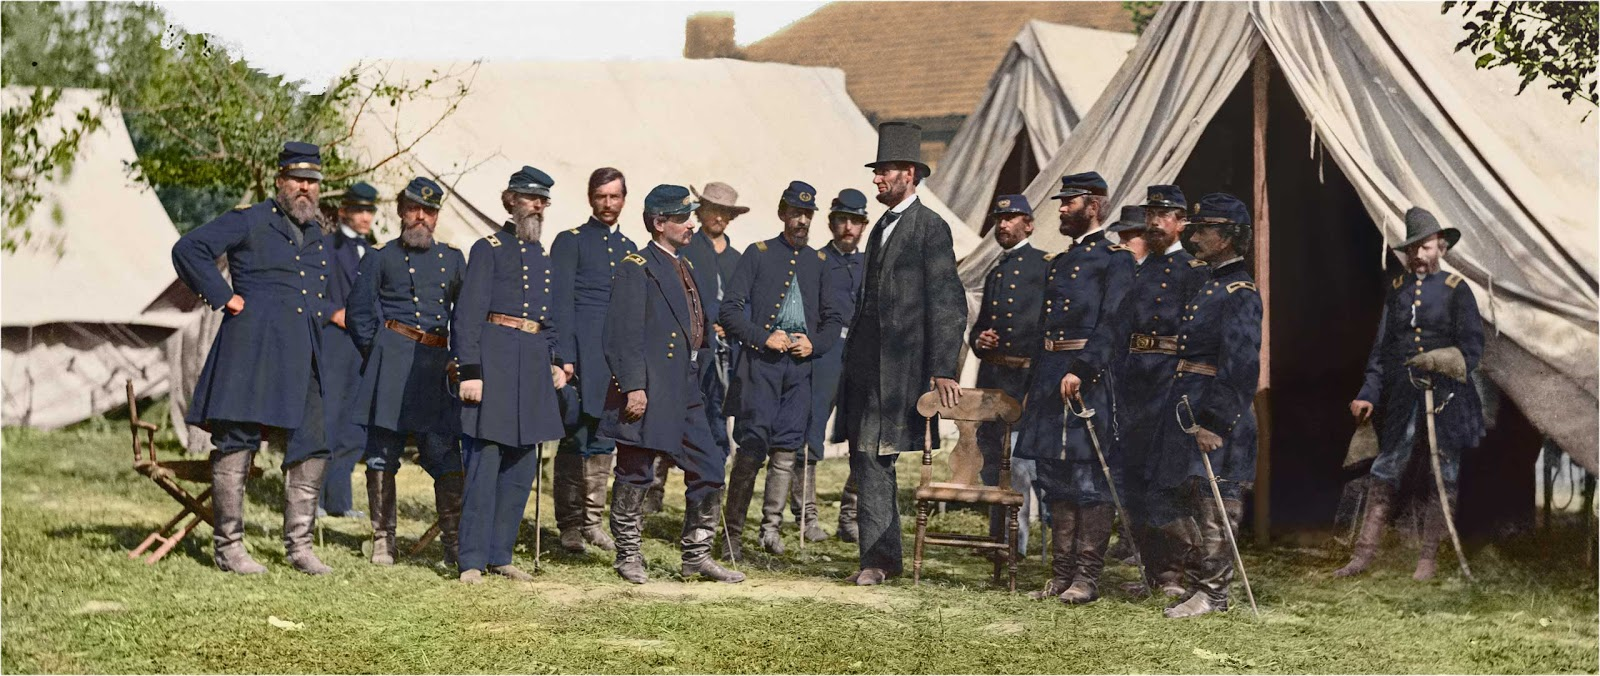 The Civil War In Color 28 Stunning Colorized Photos That Civil War Pictures In Color